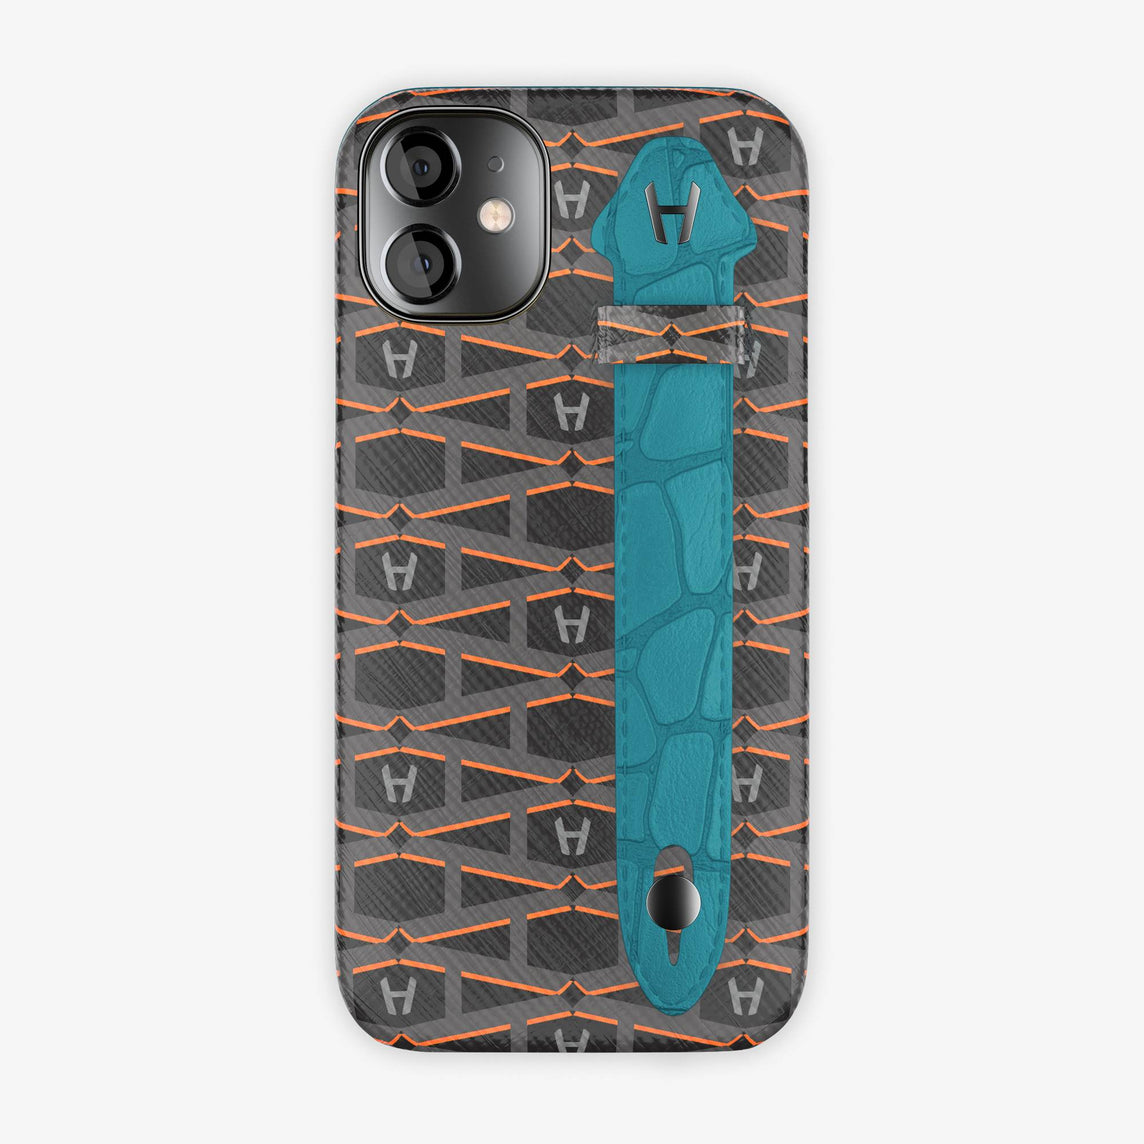 Monogram Side Finger Case iPhone 12 Mini | Black/Alligator Blue Teal - Black